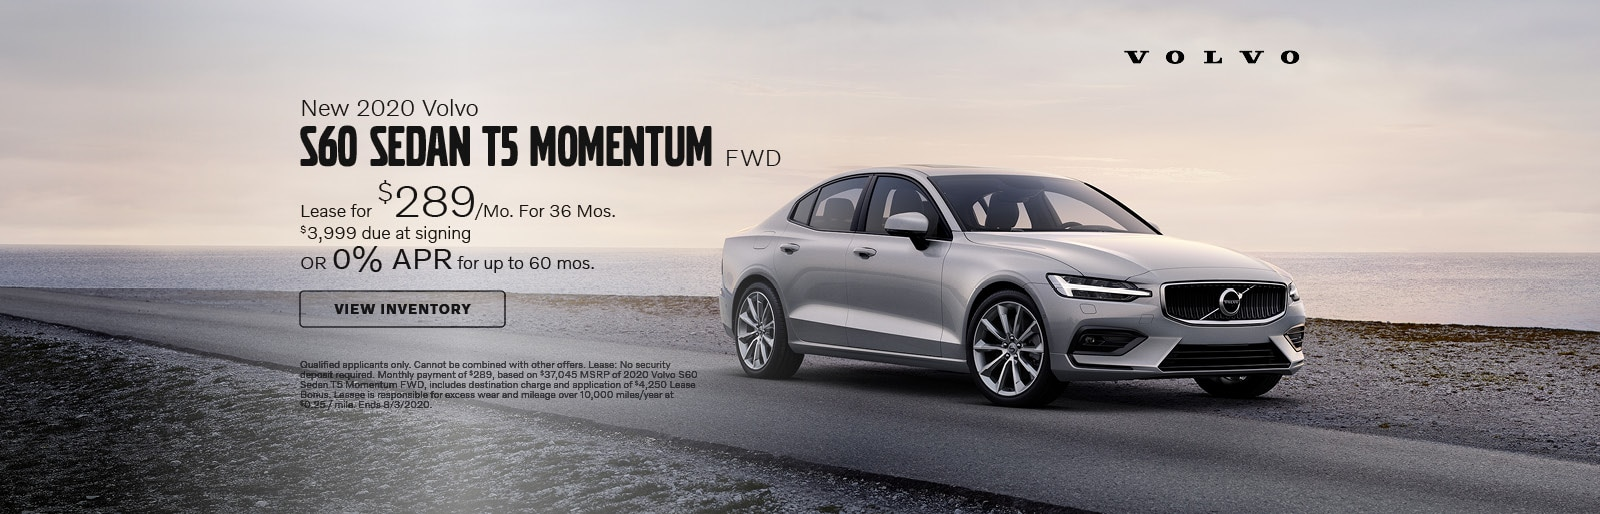 new volvo  used car dealer in st louis mo  volvo cars